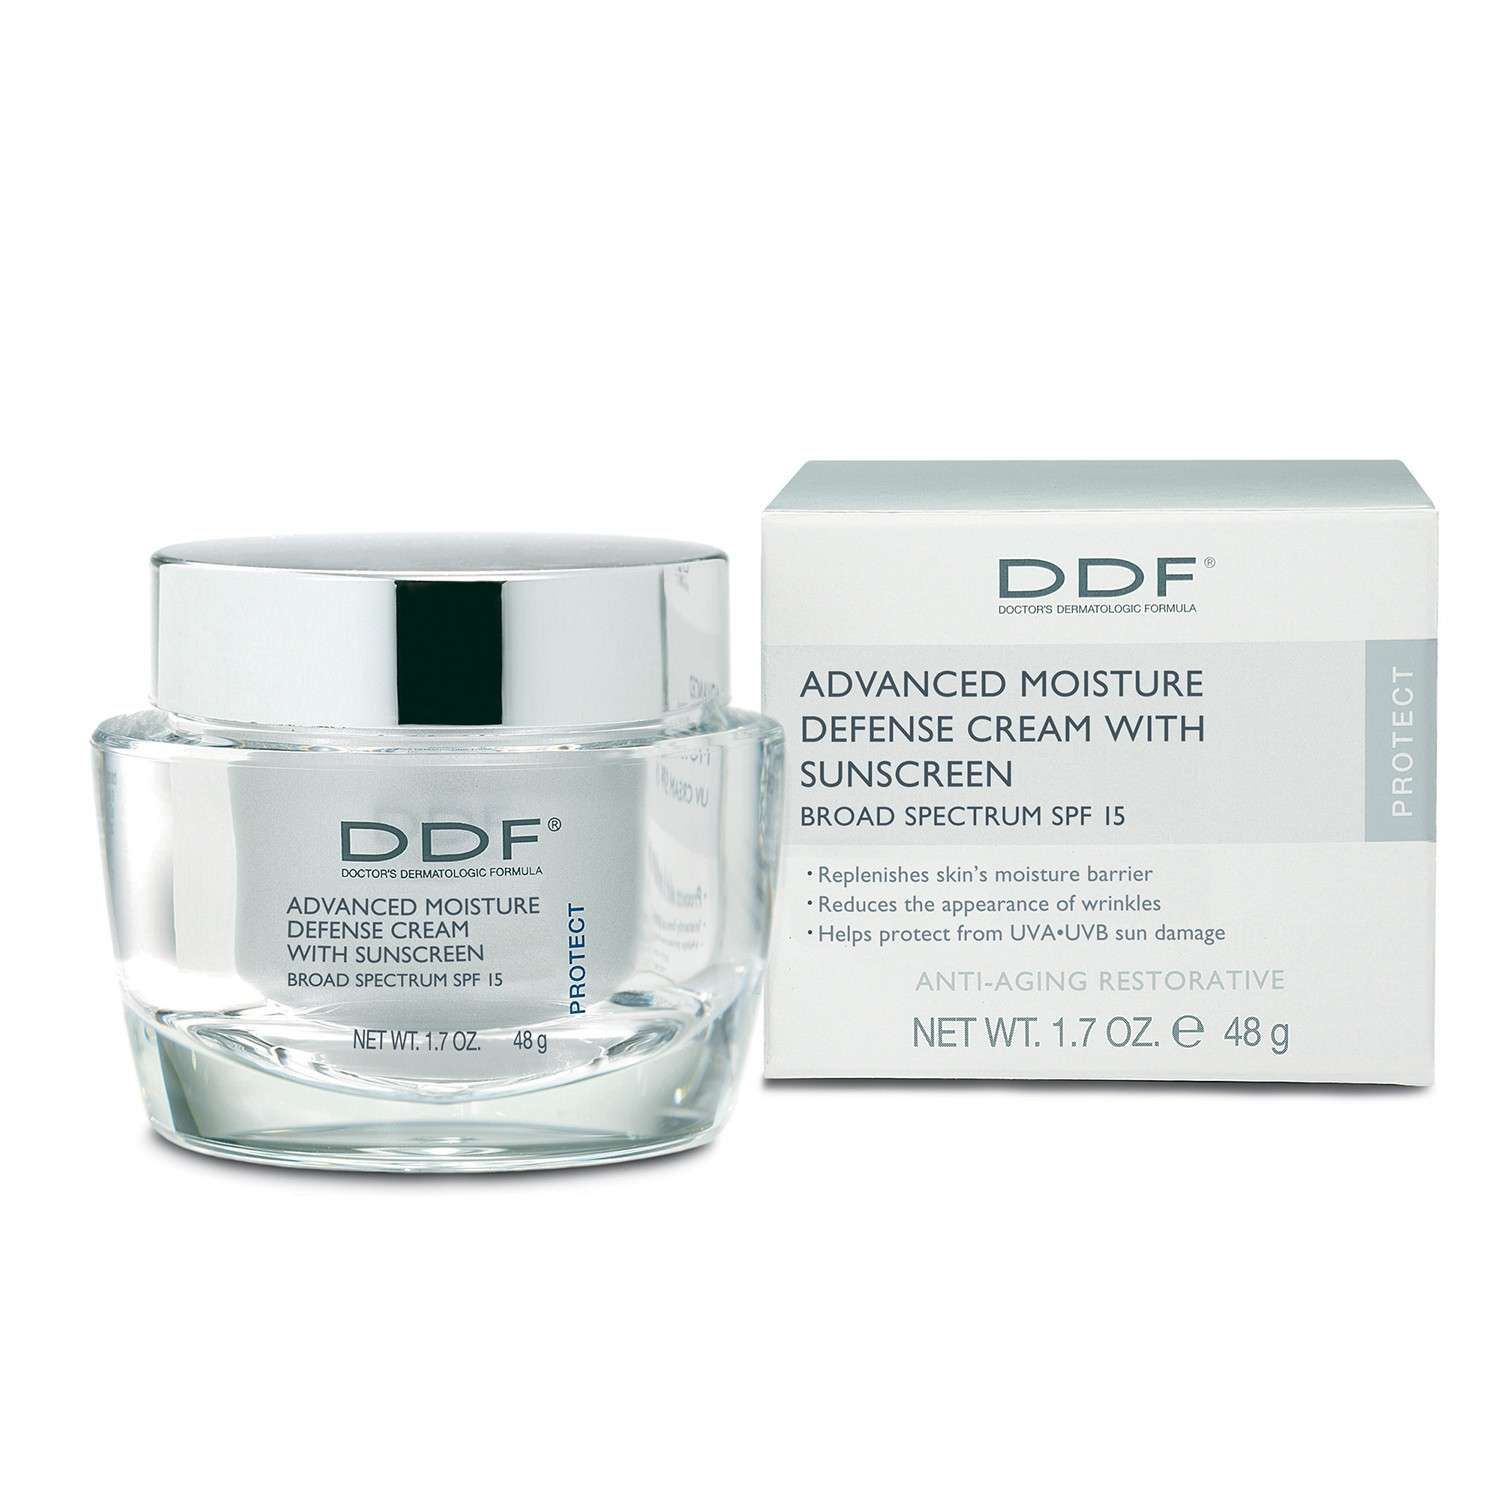 DDF ADVANCED MOISTURE DEFENSE CREAM WITH SUNSCREEN BROAD SPECTRUM SPF 15 (1.7 oz / 48 g)